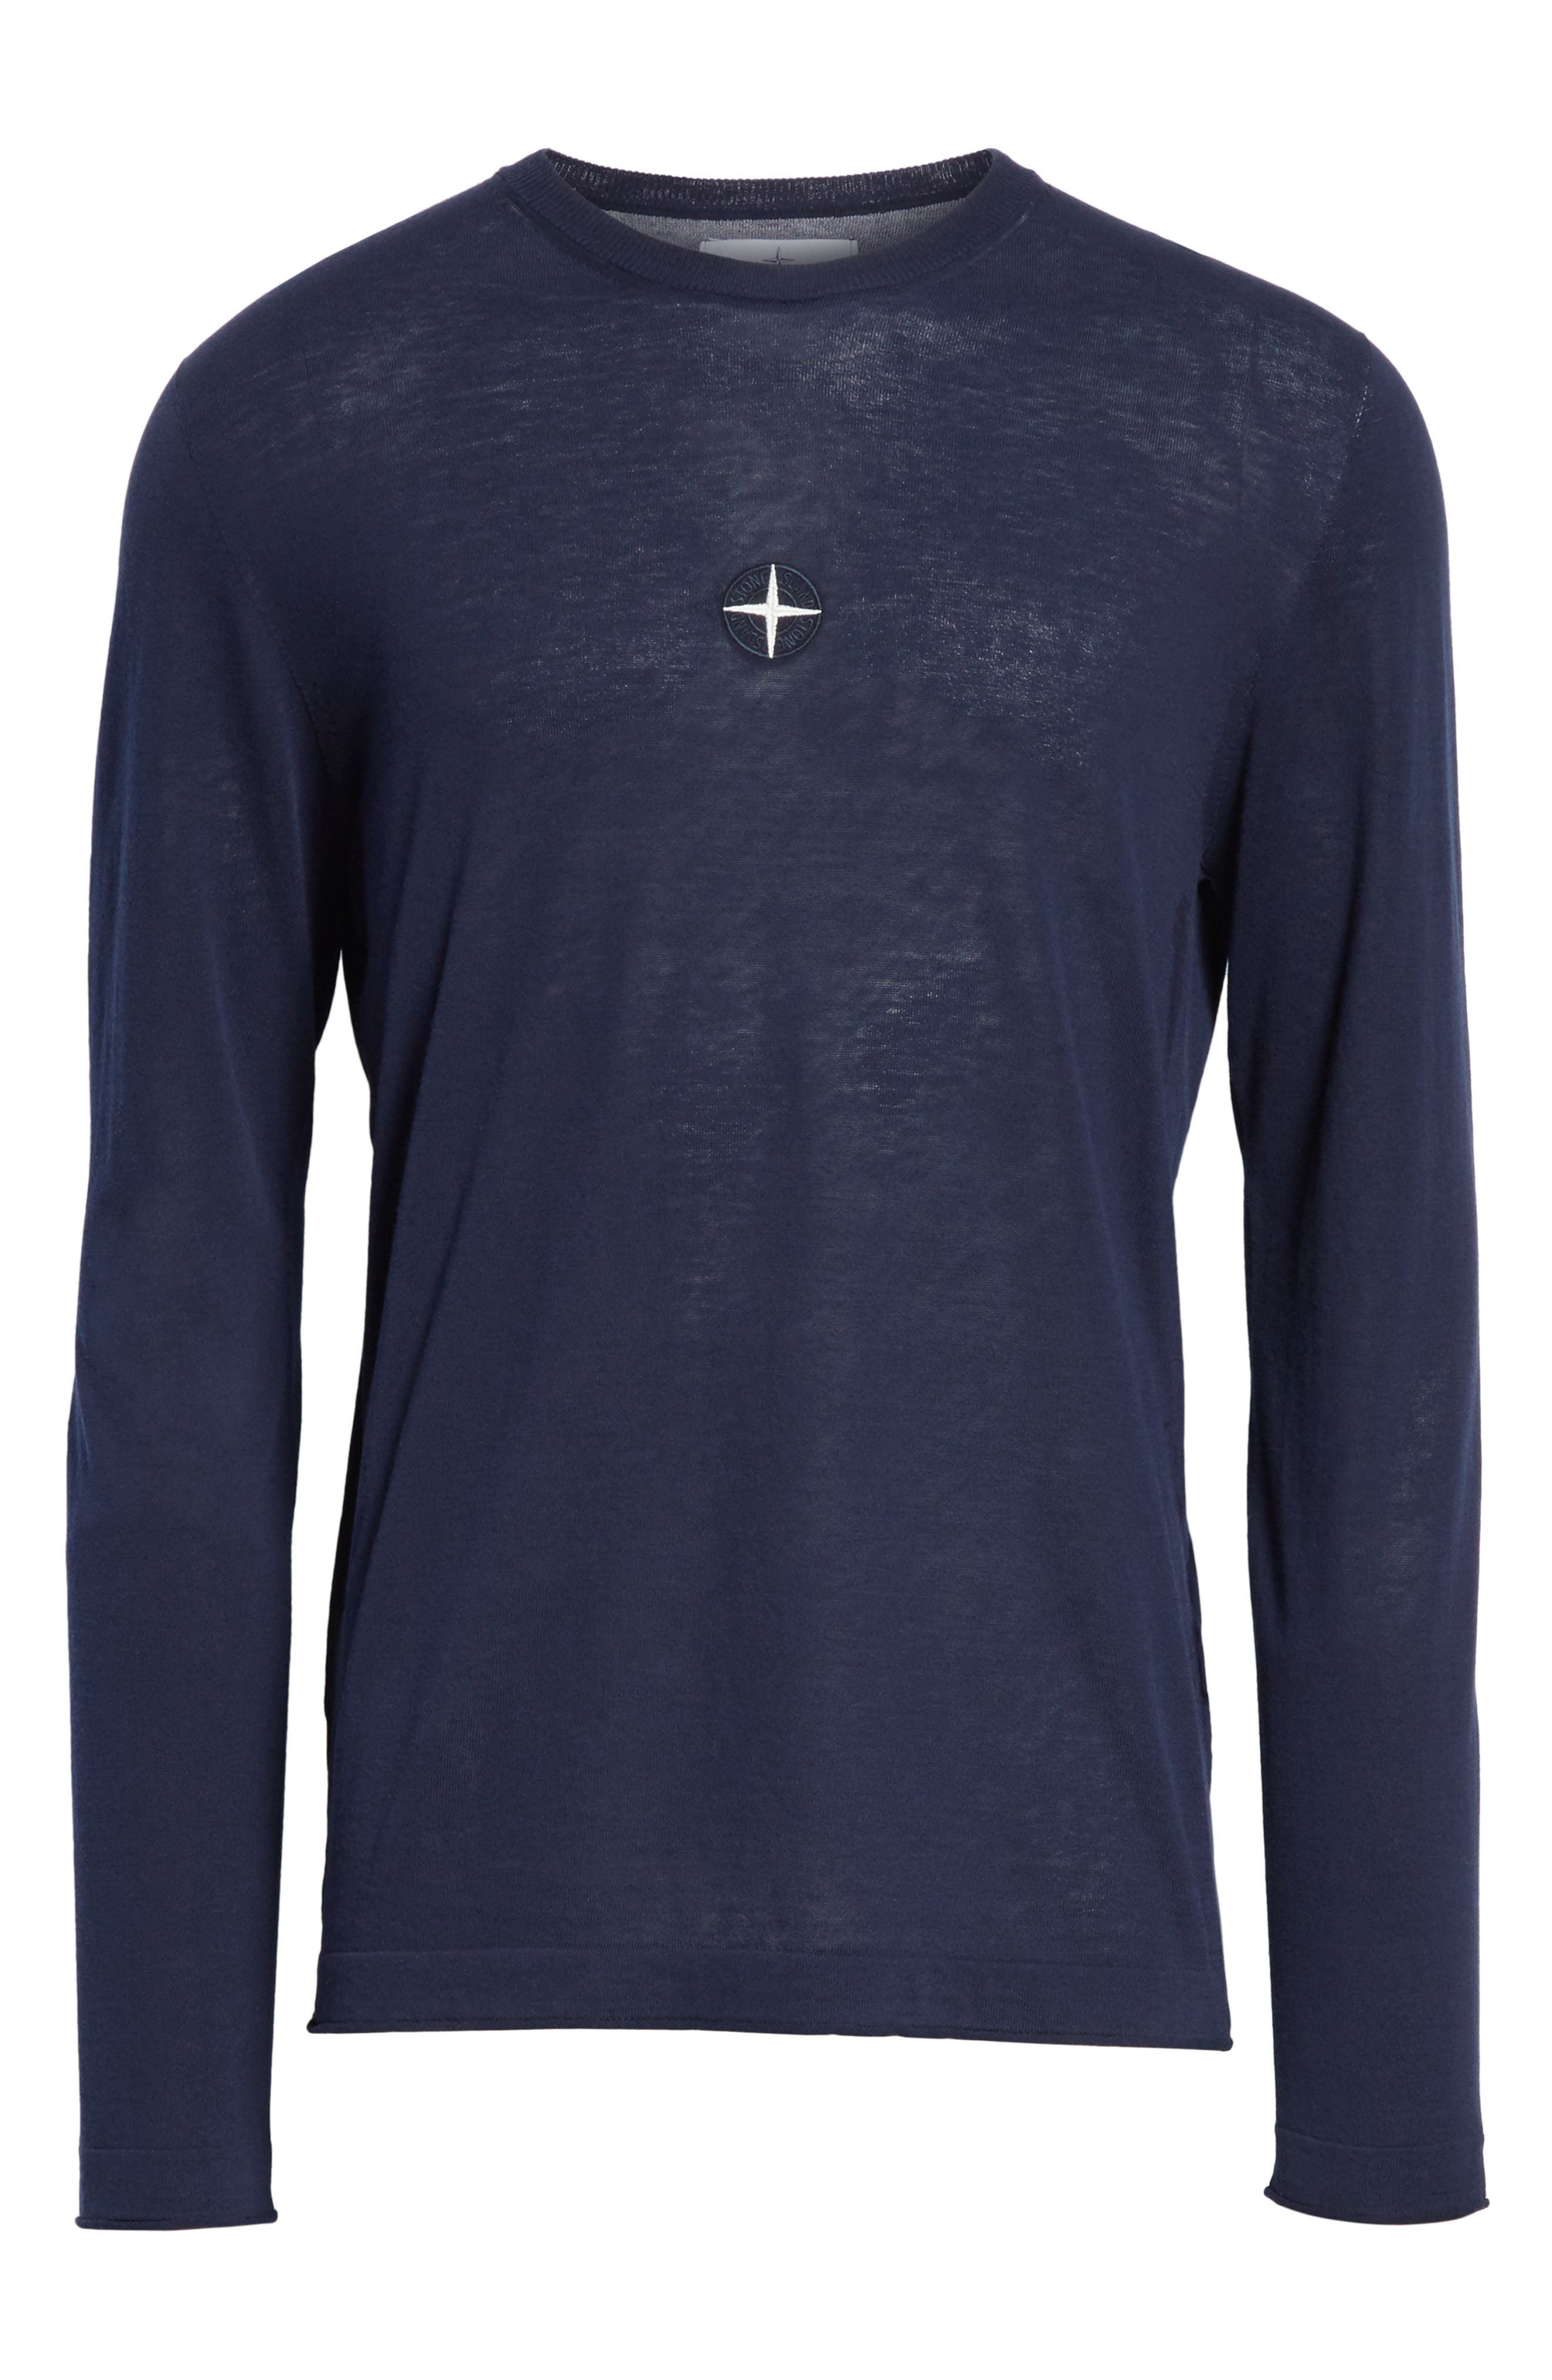 Embroidered Crest Sweater,                             Alternate thumbnail 6, color,                             Blue